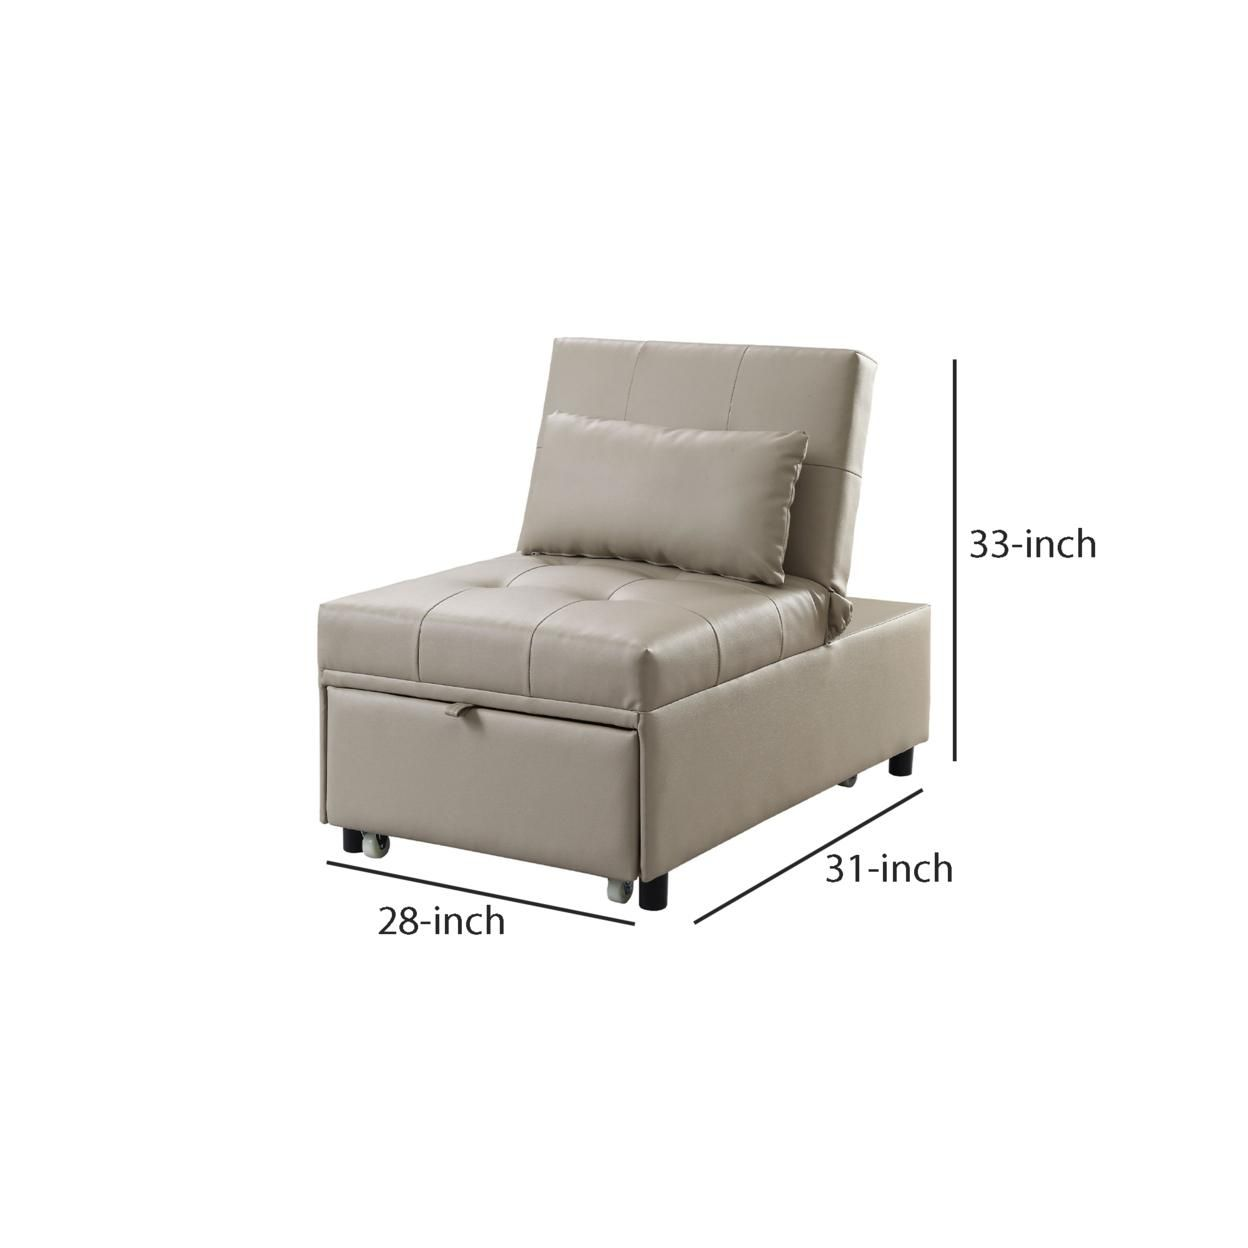 Sofa Bed with 1 Lumbar Pillow and Pull Out Sleeper, Beige, Saltoro Sherpi